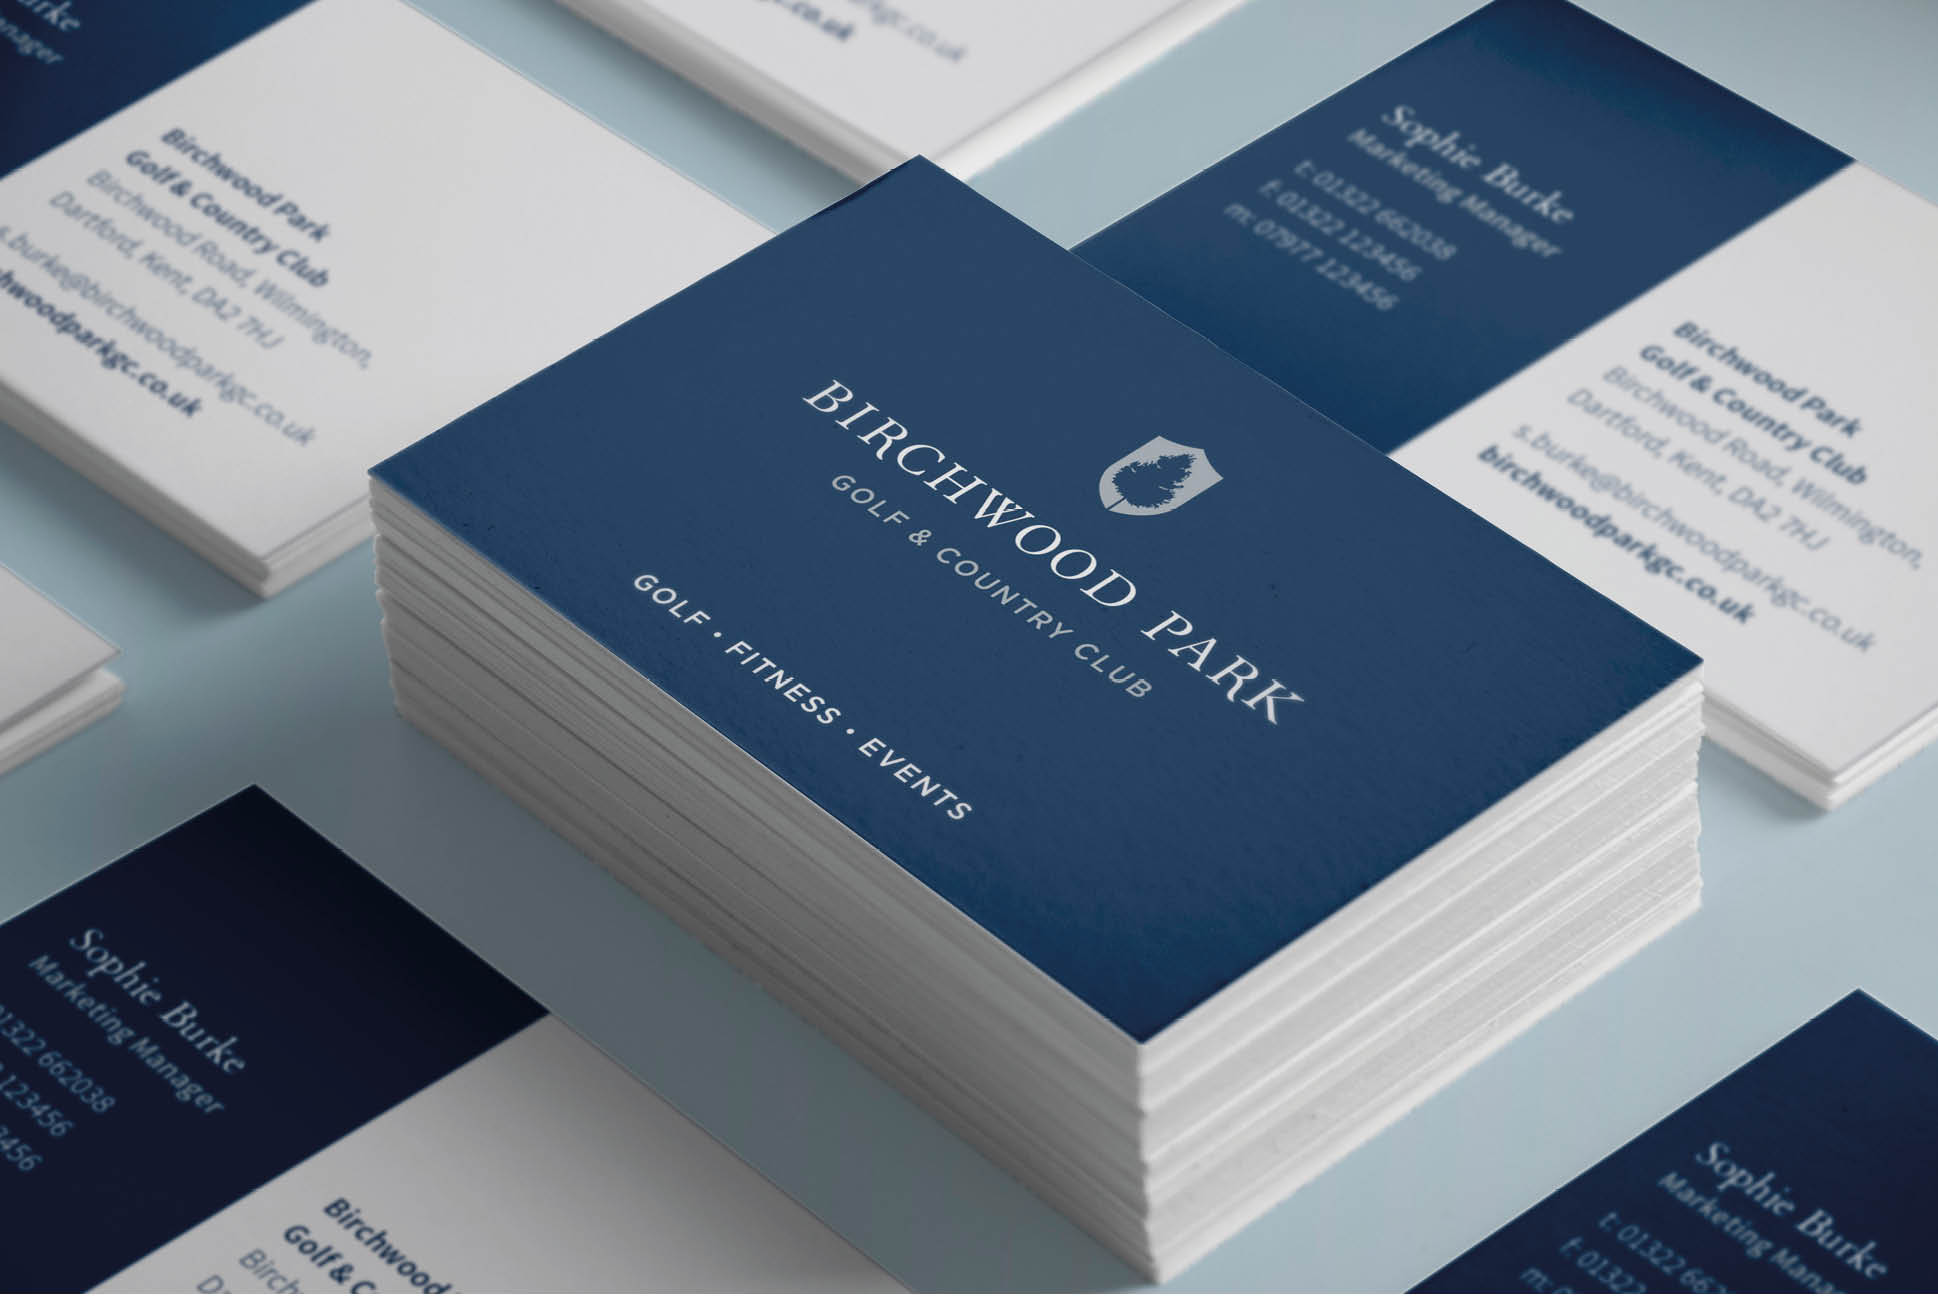 Birchwood Park Business Cards   Independent Marketing - Strategic Consulting for Branding and Marketing   BGL Golf